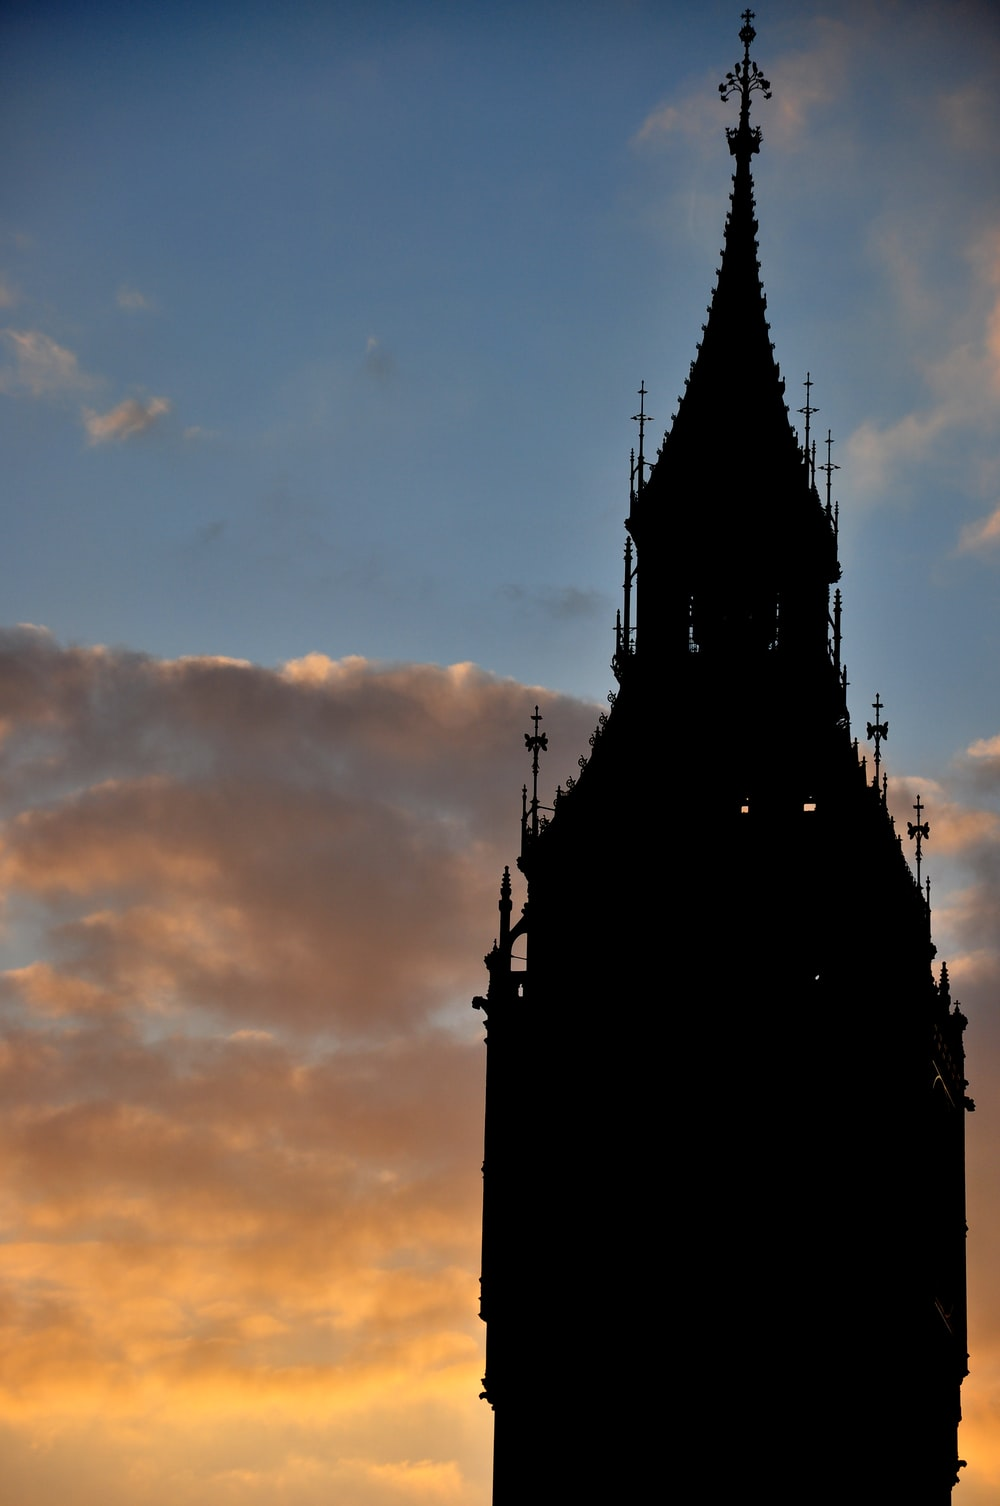 silhouette of building during sunset